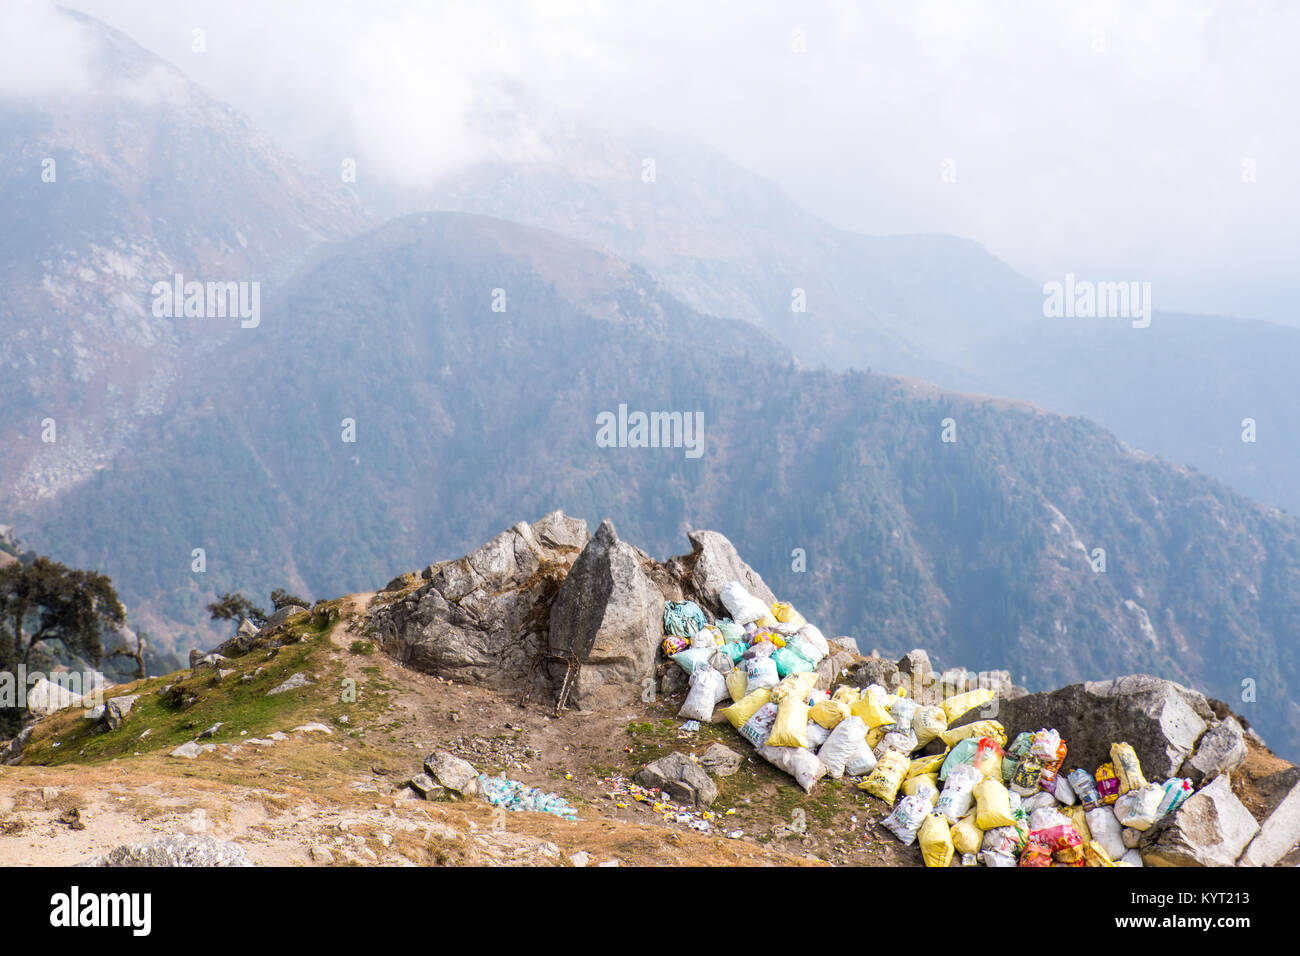 Trekker's waste piled up in plastic sacks in the Himalayan foothills, India - Stock Image